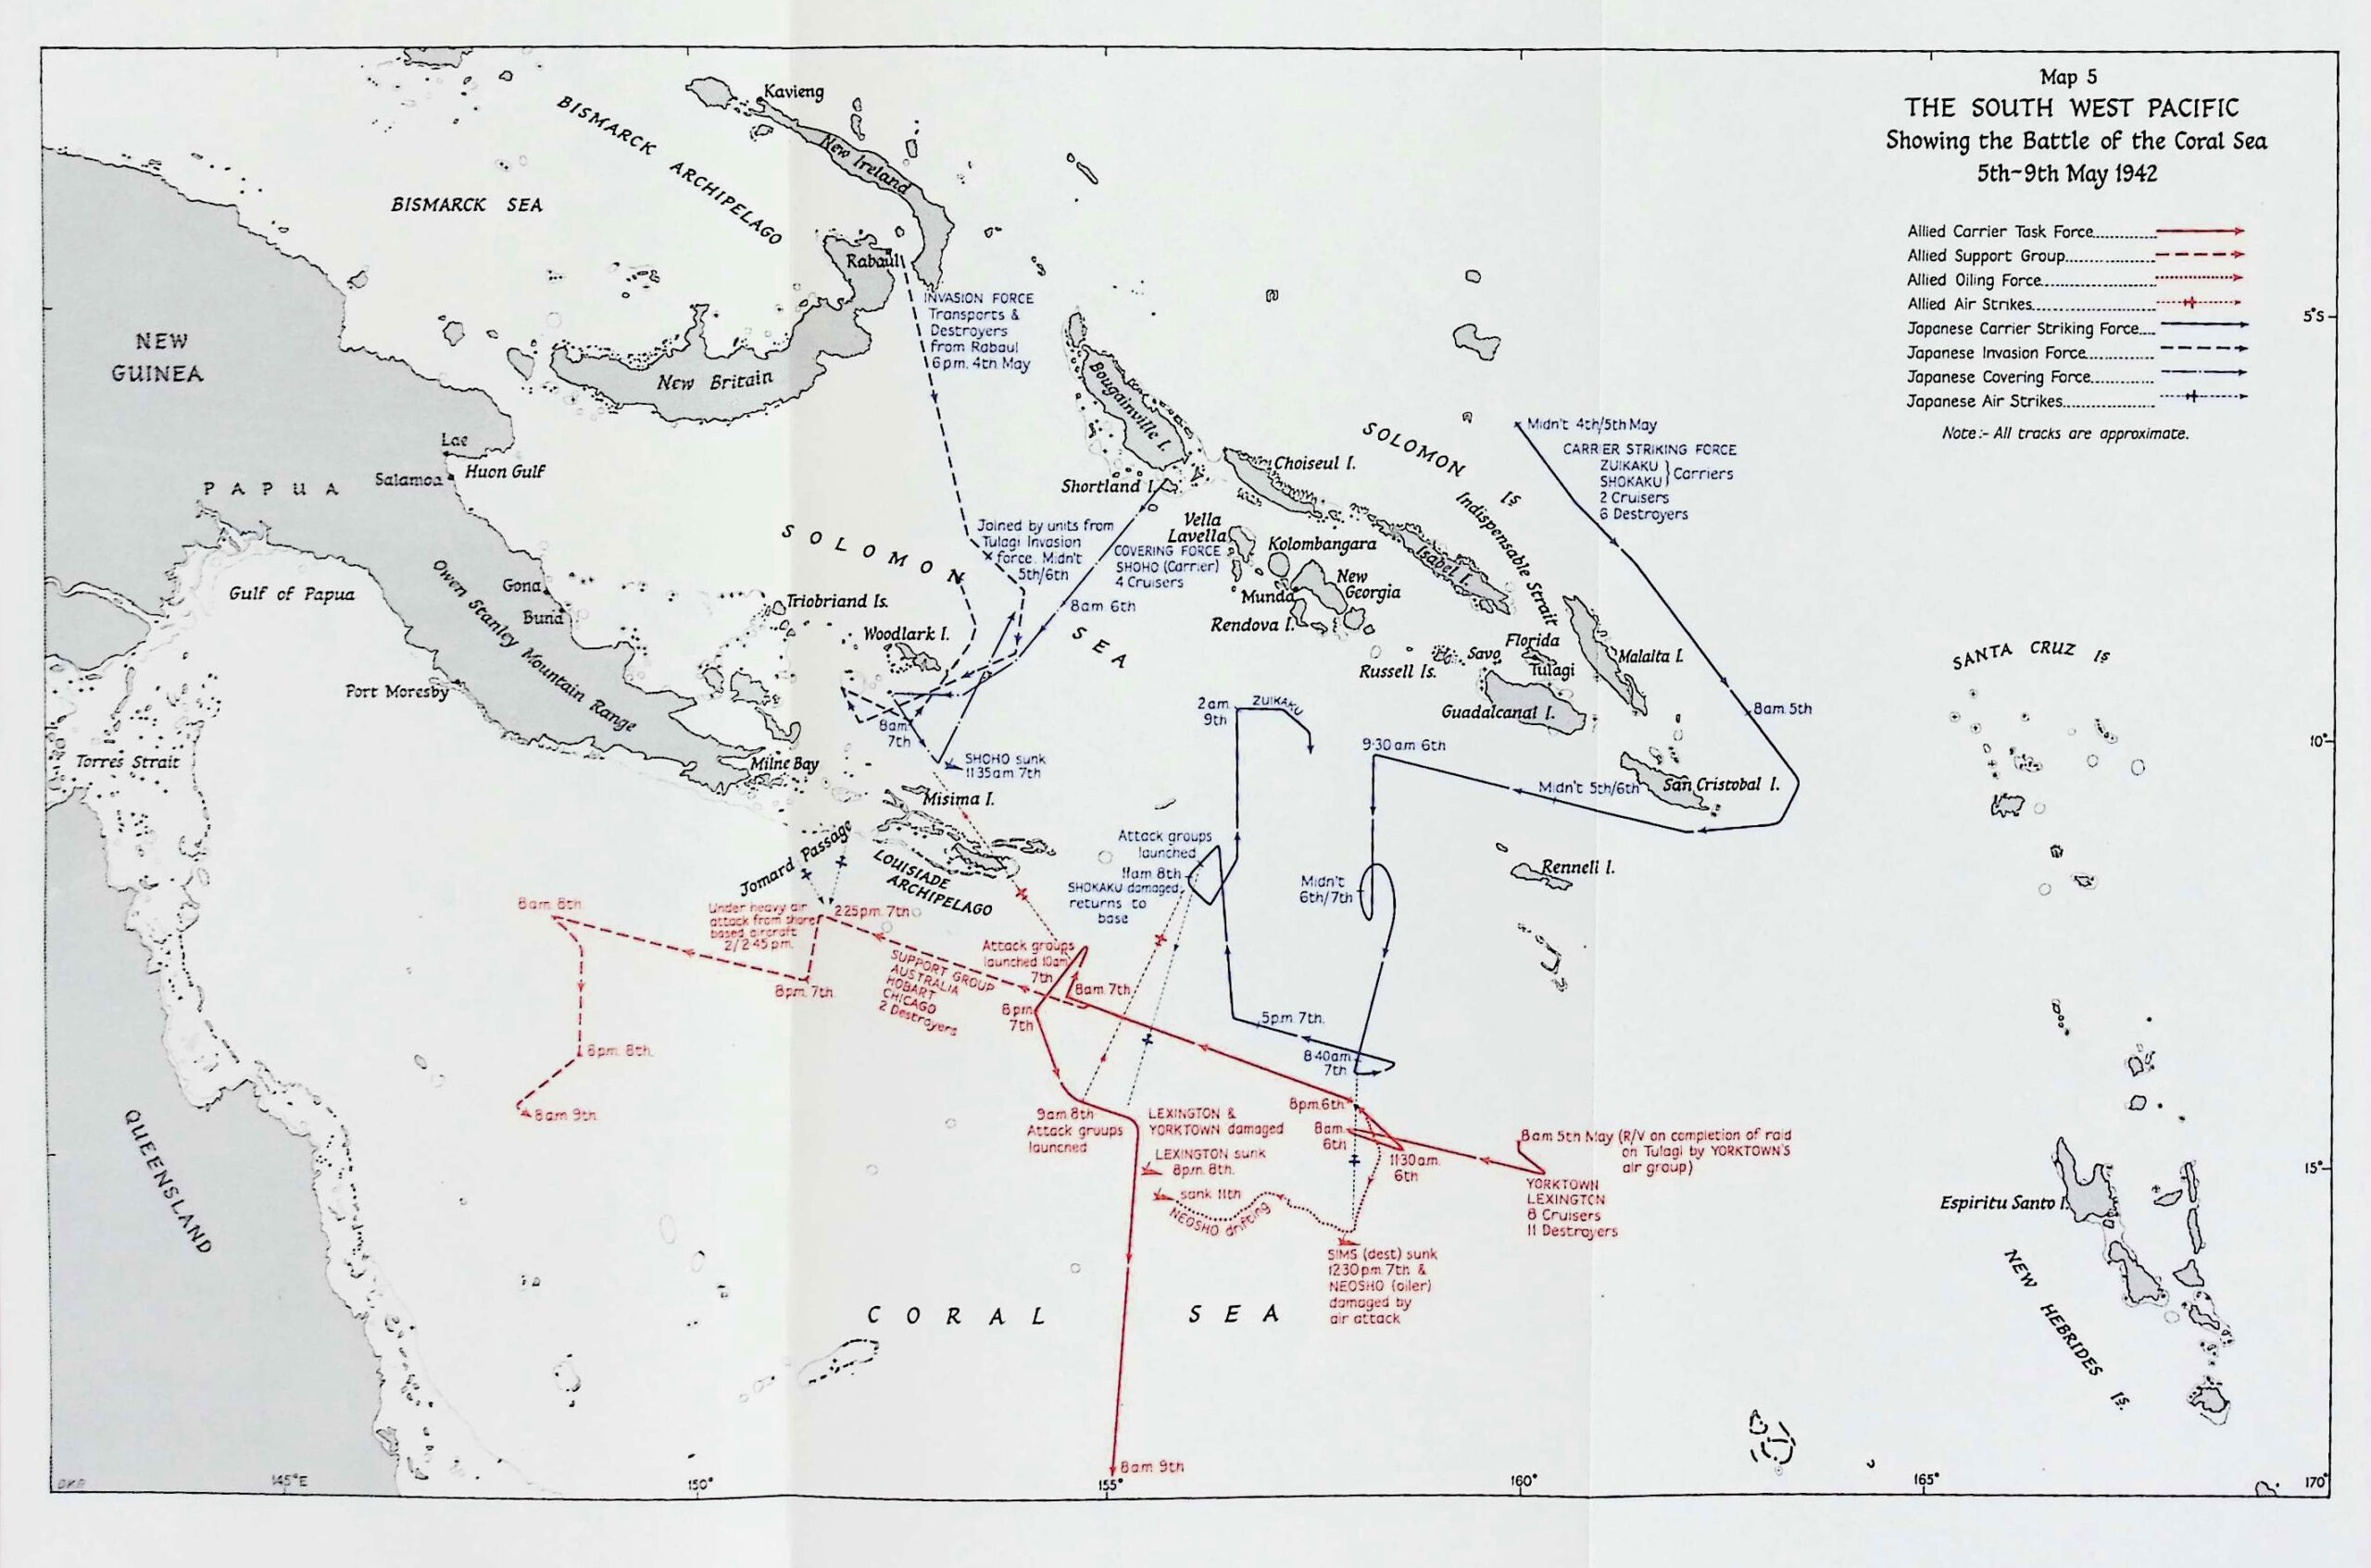 Map of the Battle of the Coral Sea. History Guild.